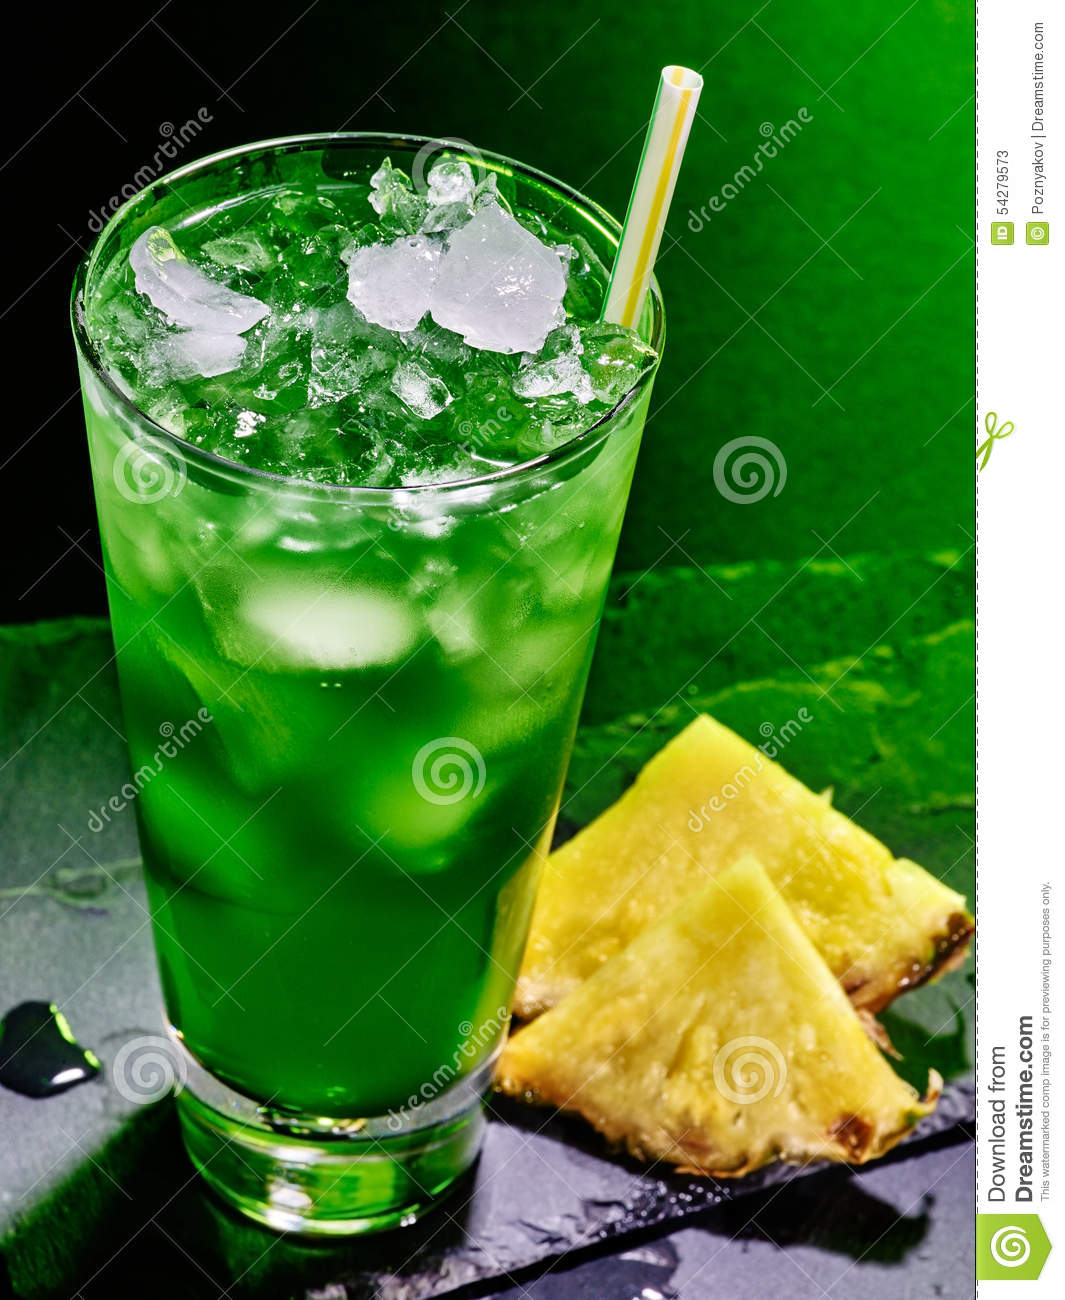 Green Pineapple Cocktail On Dark Background 51 Stock Image